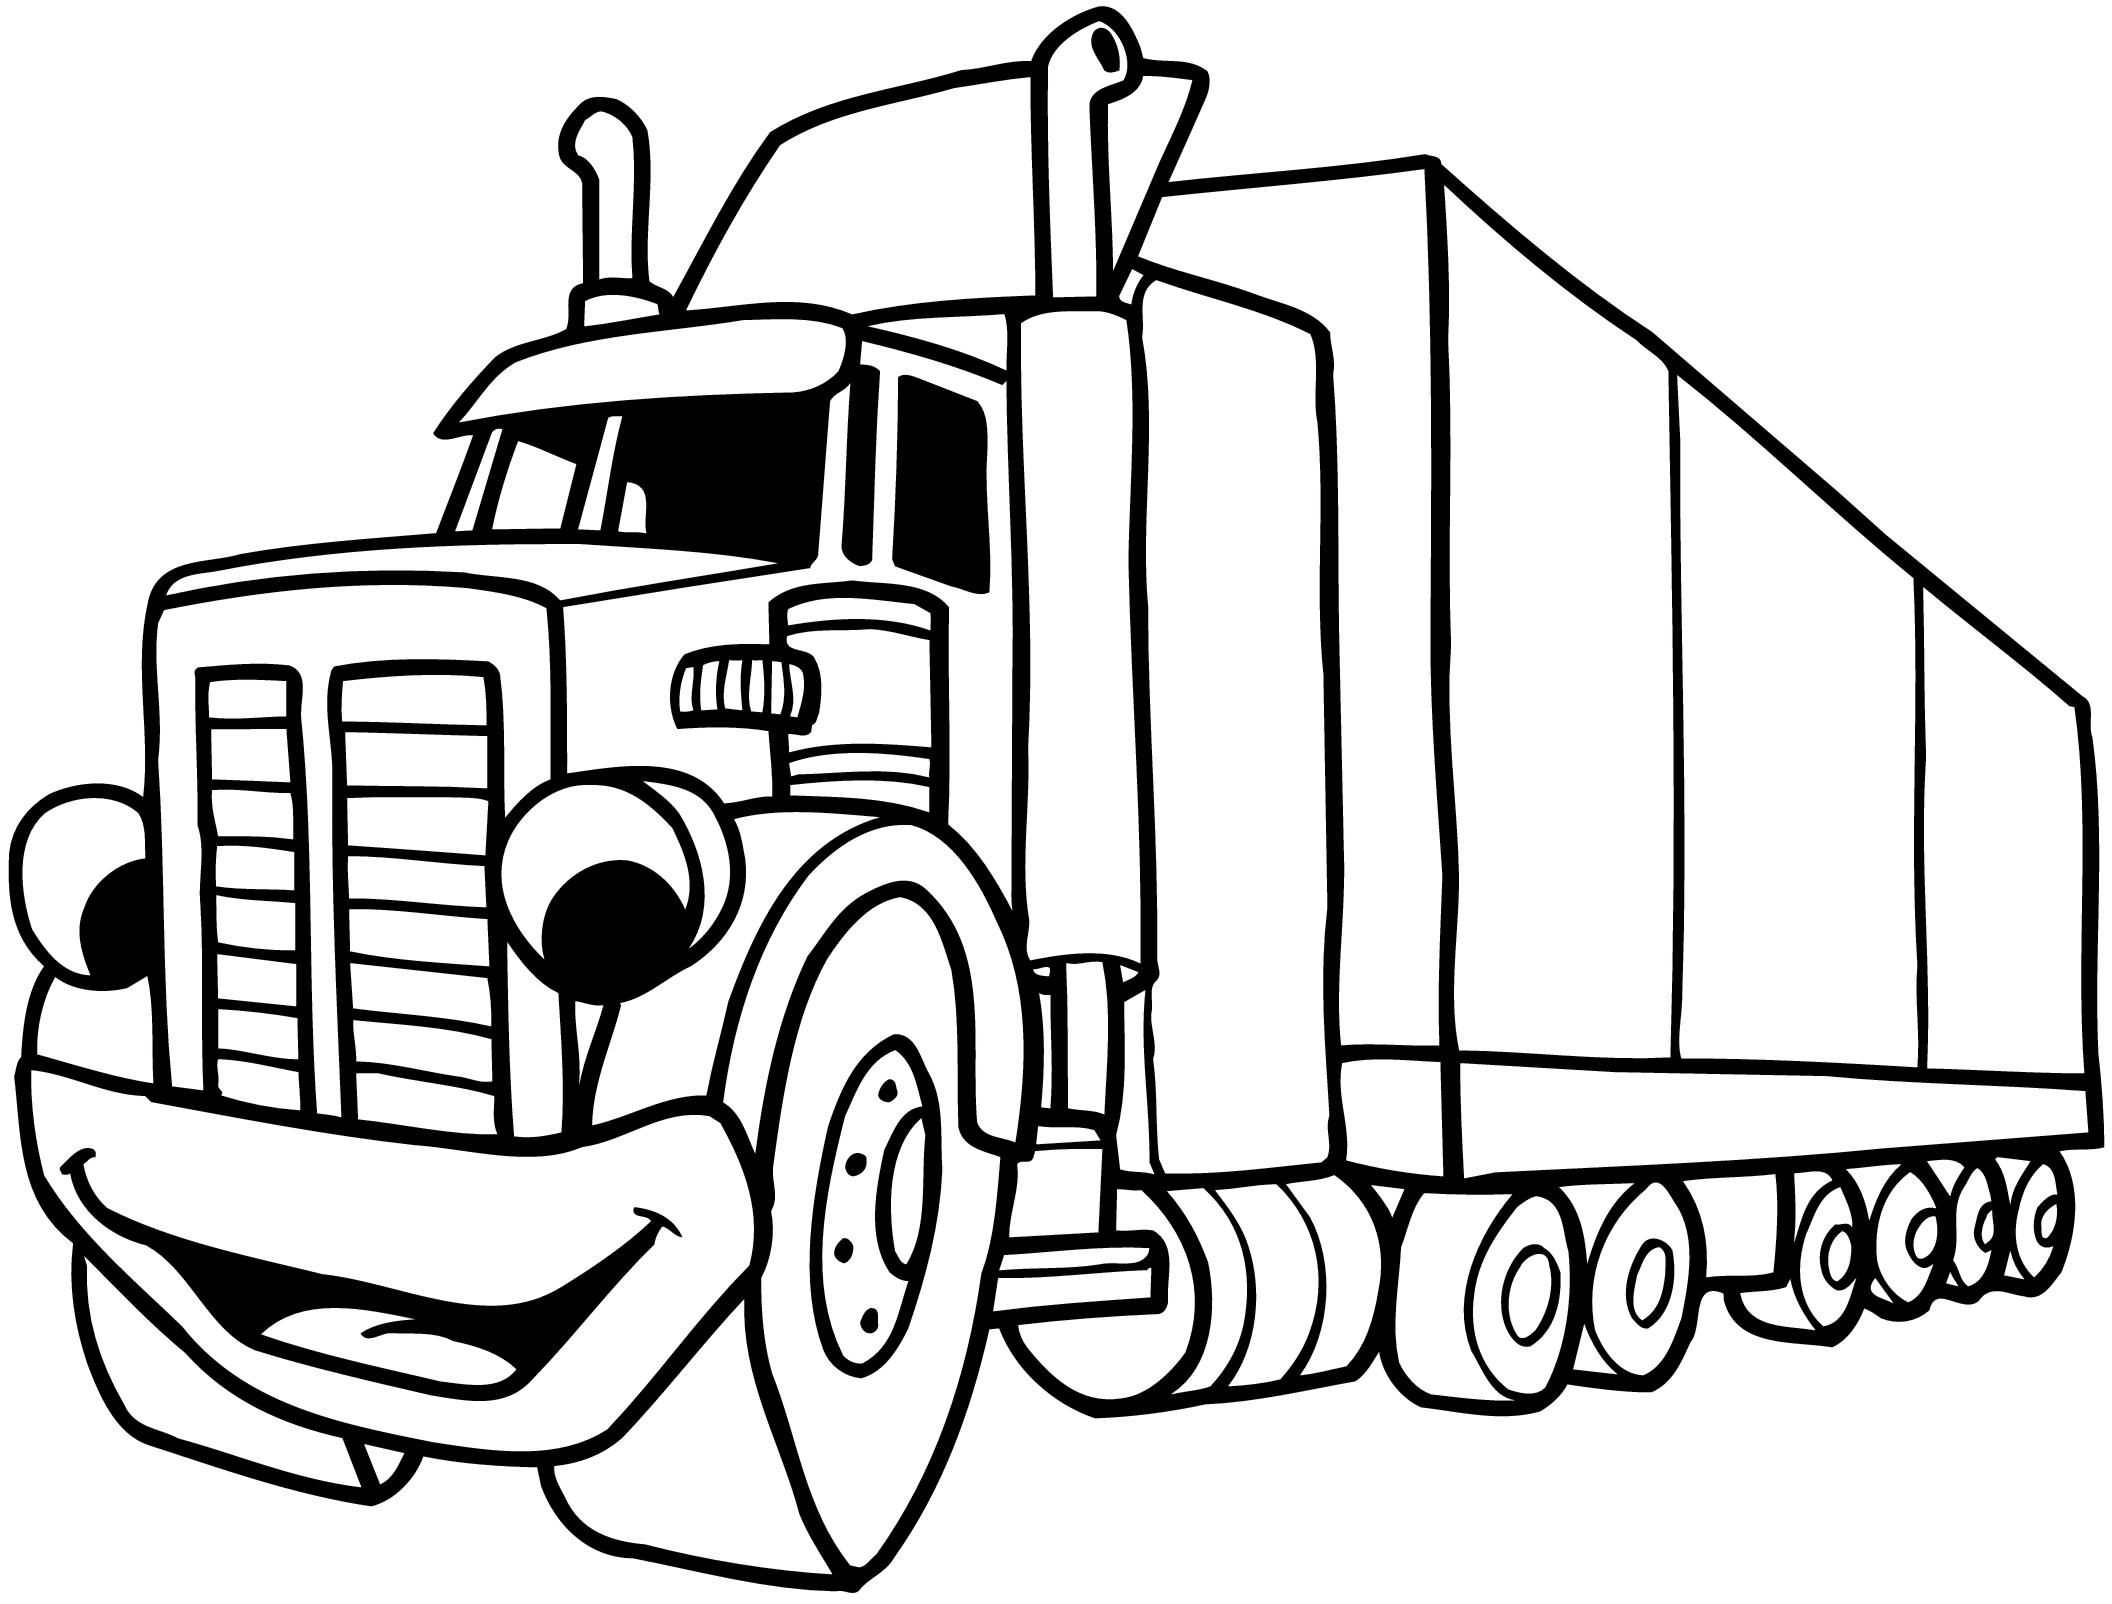 Transportation Vehicle Vector Cartoon Art Designs Compilation We Are Currently Seeking Graphic Designers And S Black And White Cartoon Clip Art Cartoon Design